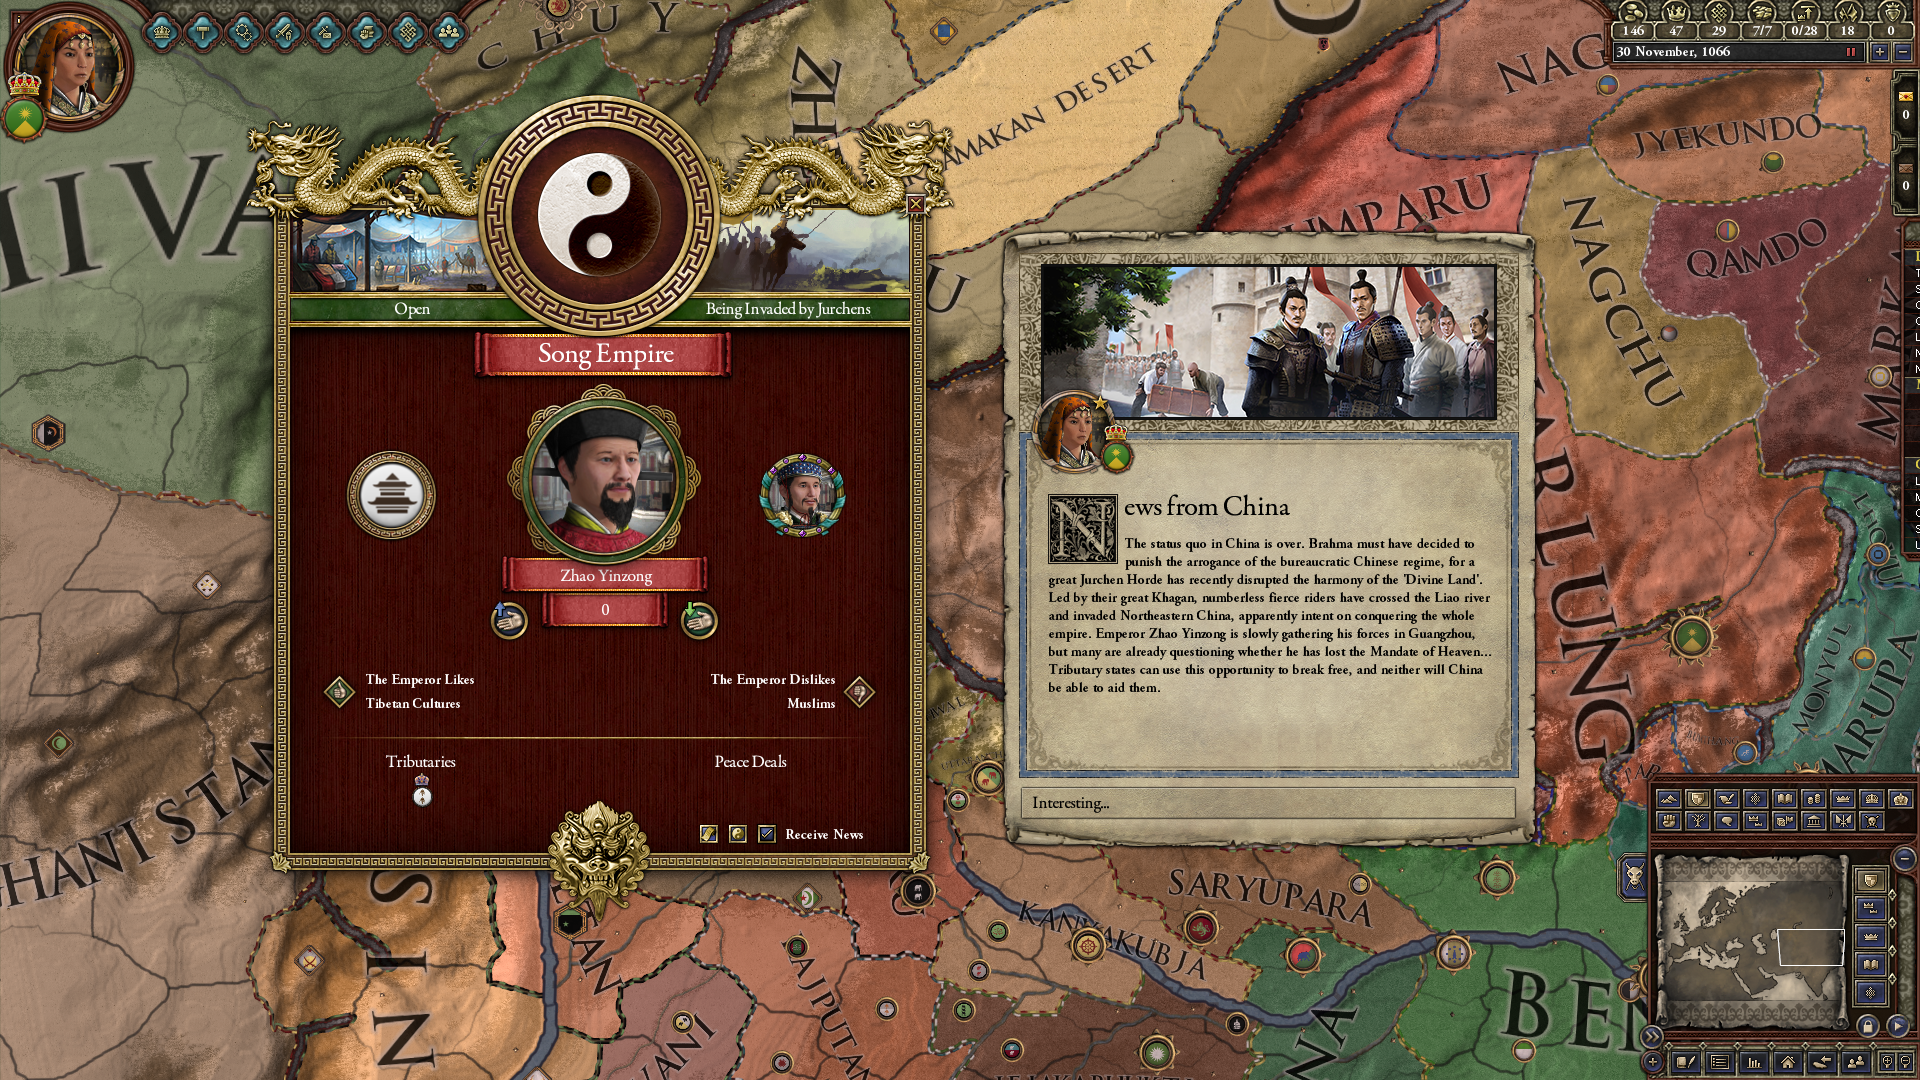 ck2 dev diary 62 news from china paradox interactive forums